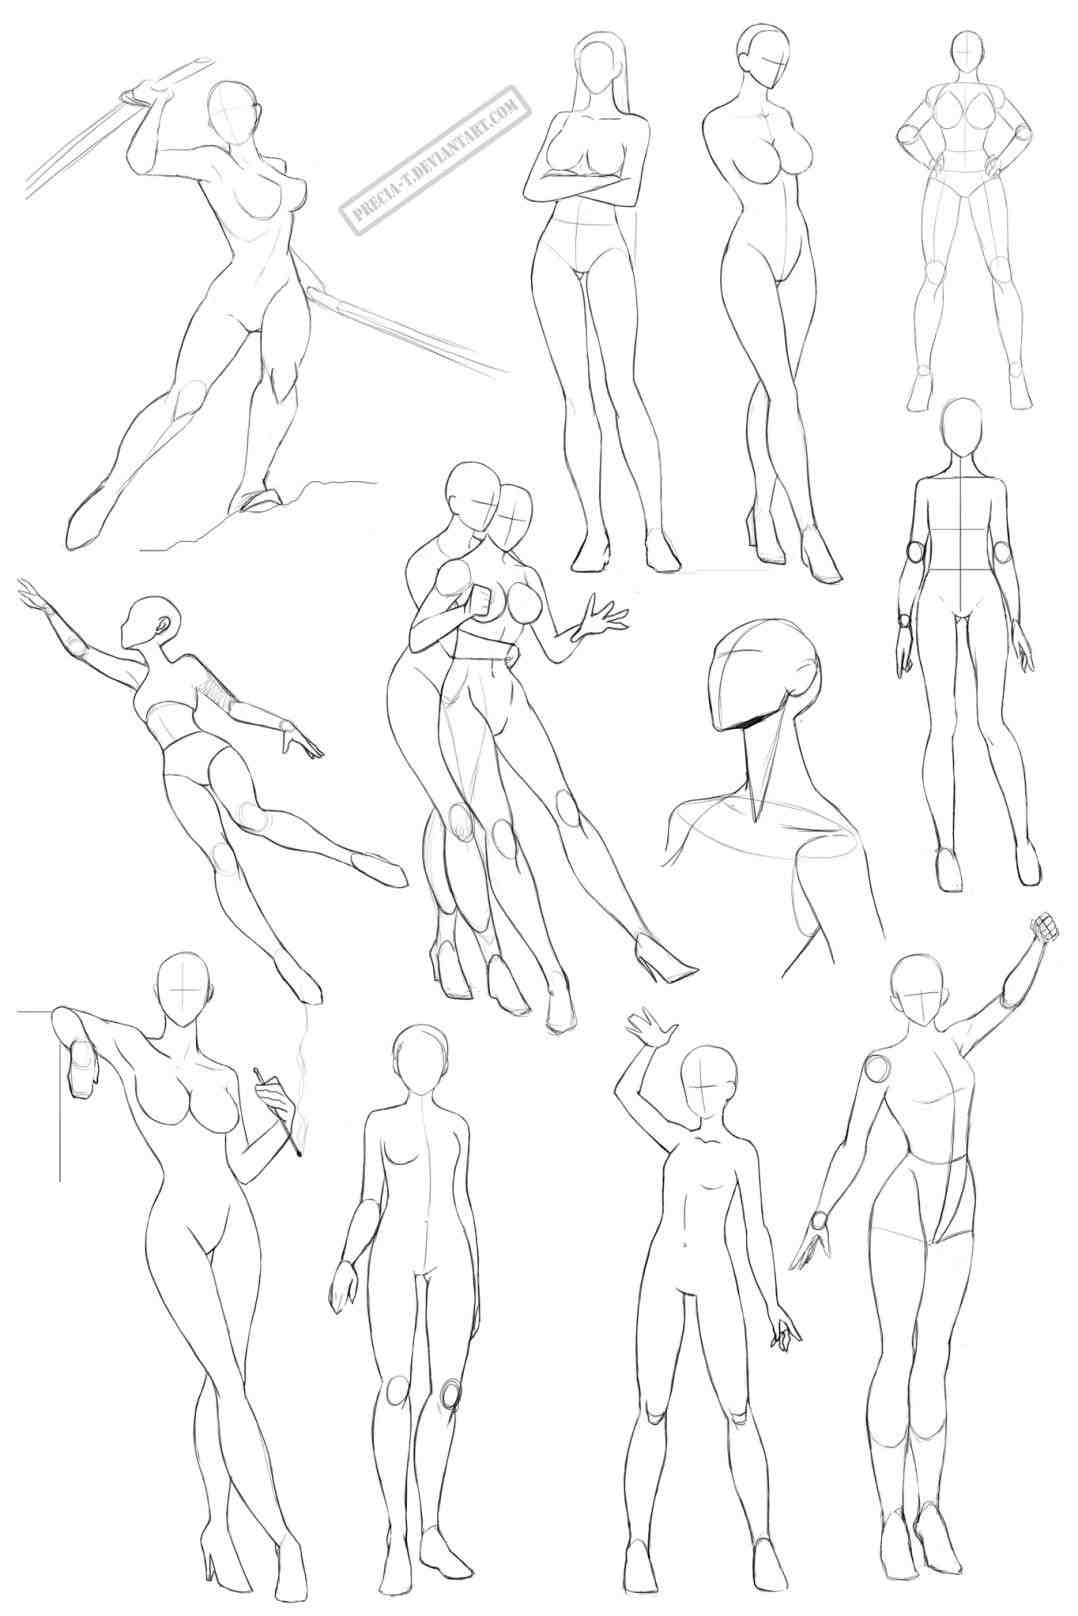 Torso Anatomy Drawing at GetDrawings.com   Free for personal use ...